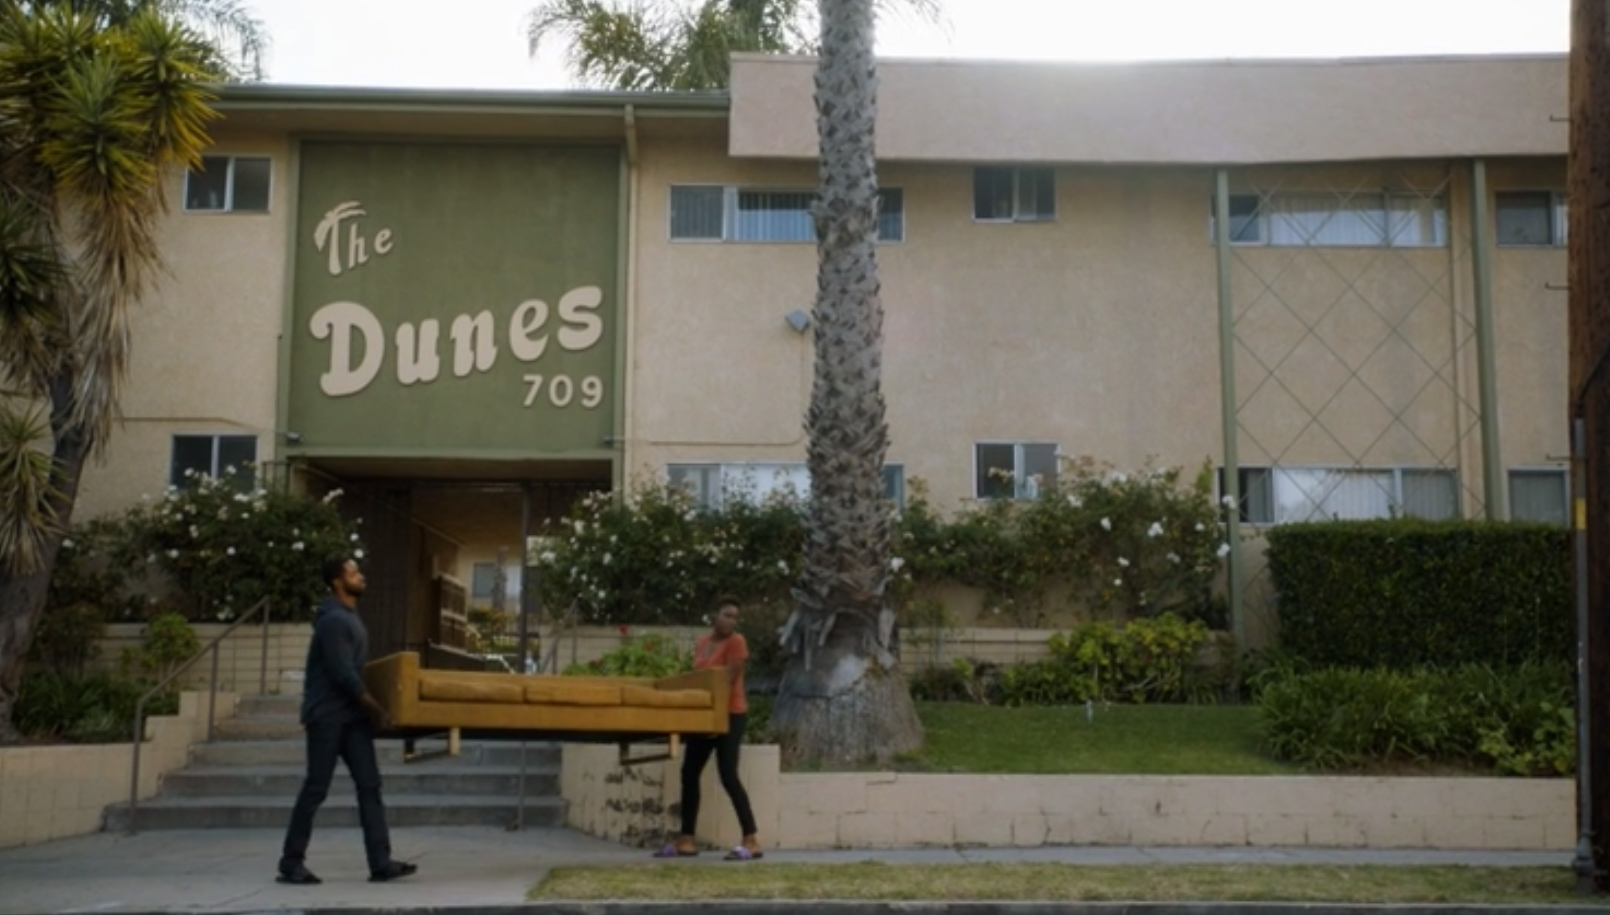 A scene from the HBO show Insecure. Two people carry an orange couch outside of a building in Los Angeles. The sign on the building reads The Dunes 709.